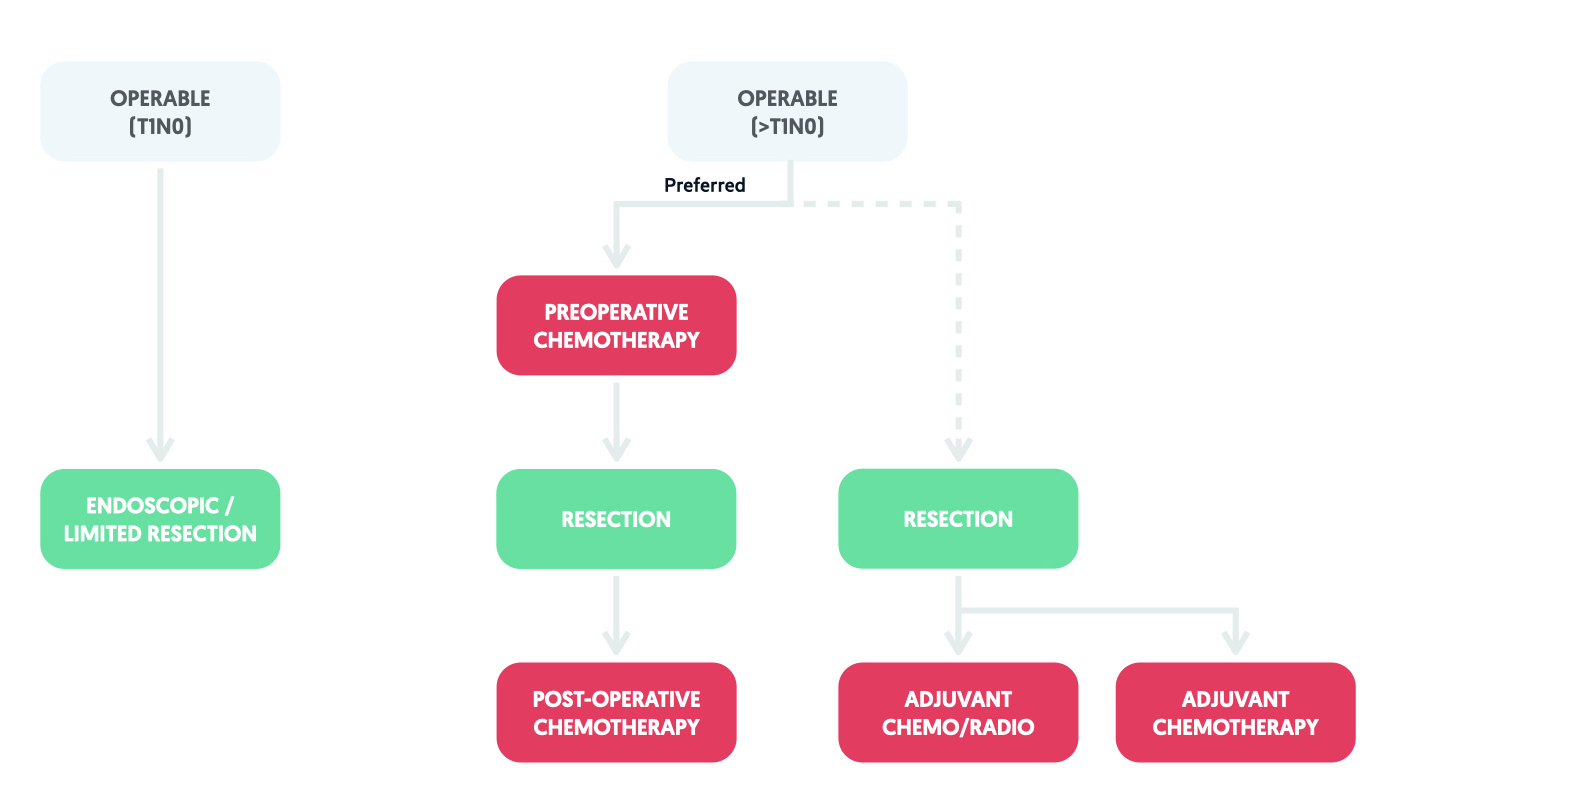 Treatment algorithm based on the European Society of Medical Oncology (ESMO) for gastric cancer (operable)